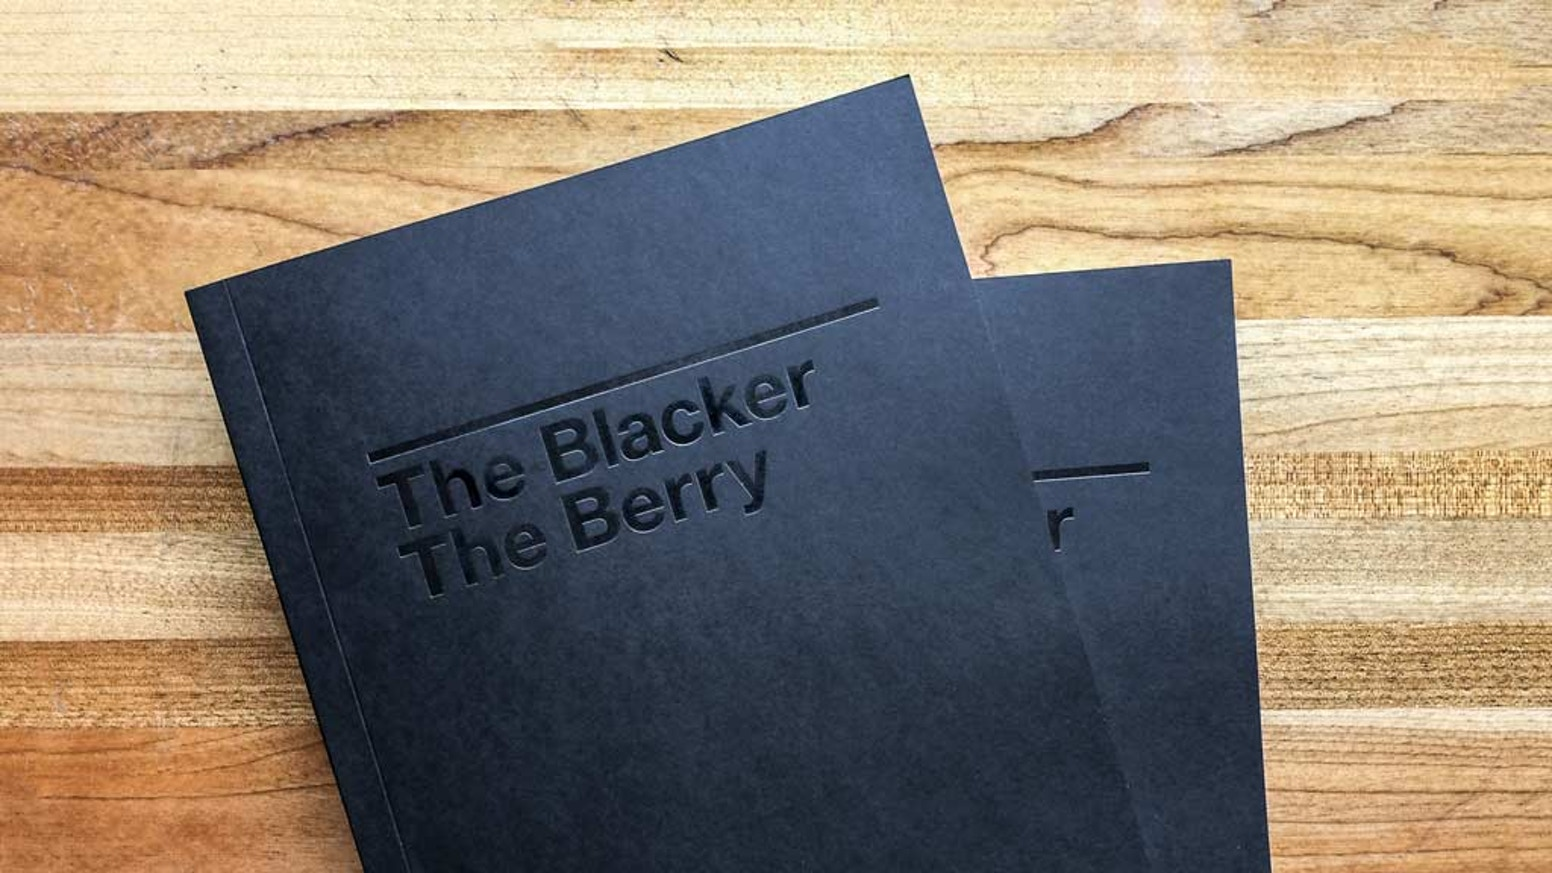 """The Blacker The Berry – The Book visualizes the historical and social context of Kendrick Lamar's song """"The Blacker The Berry."""""""